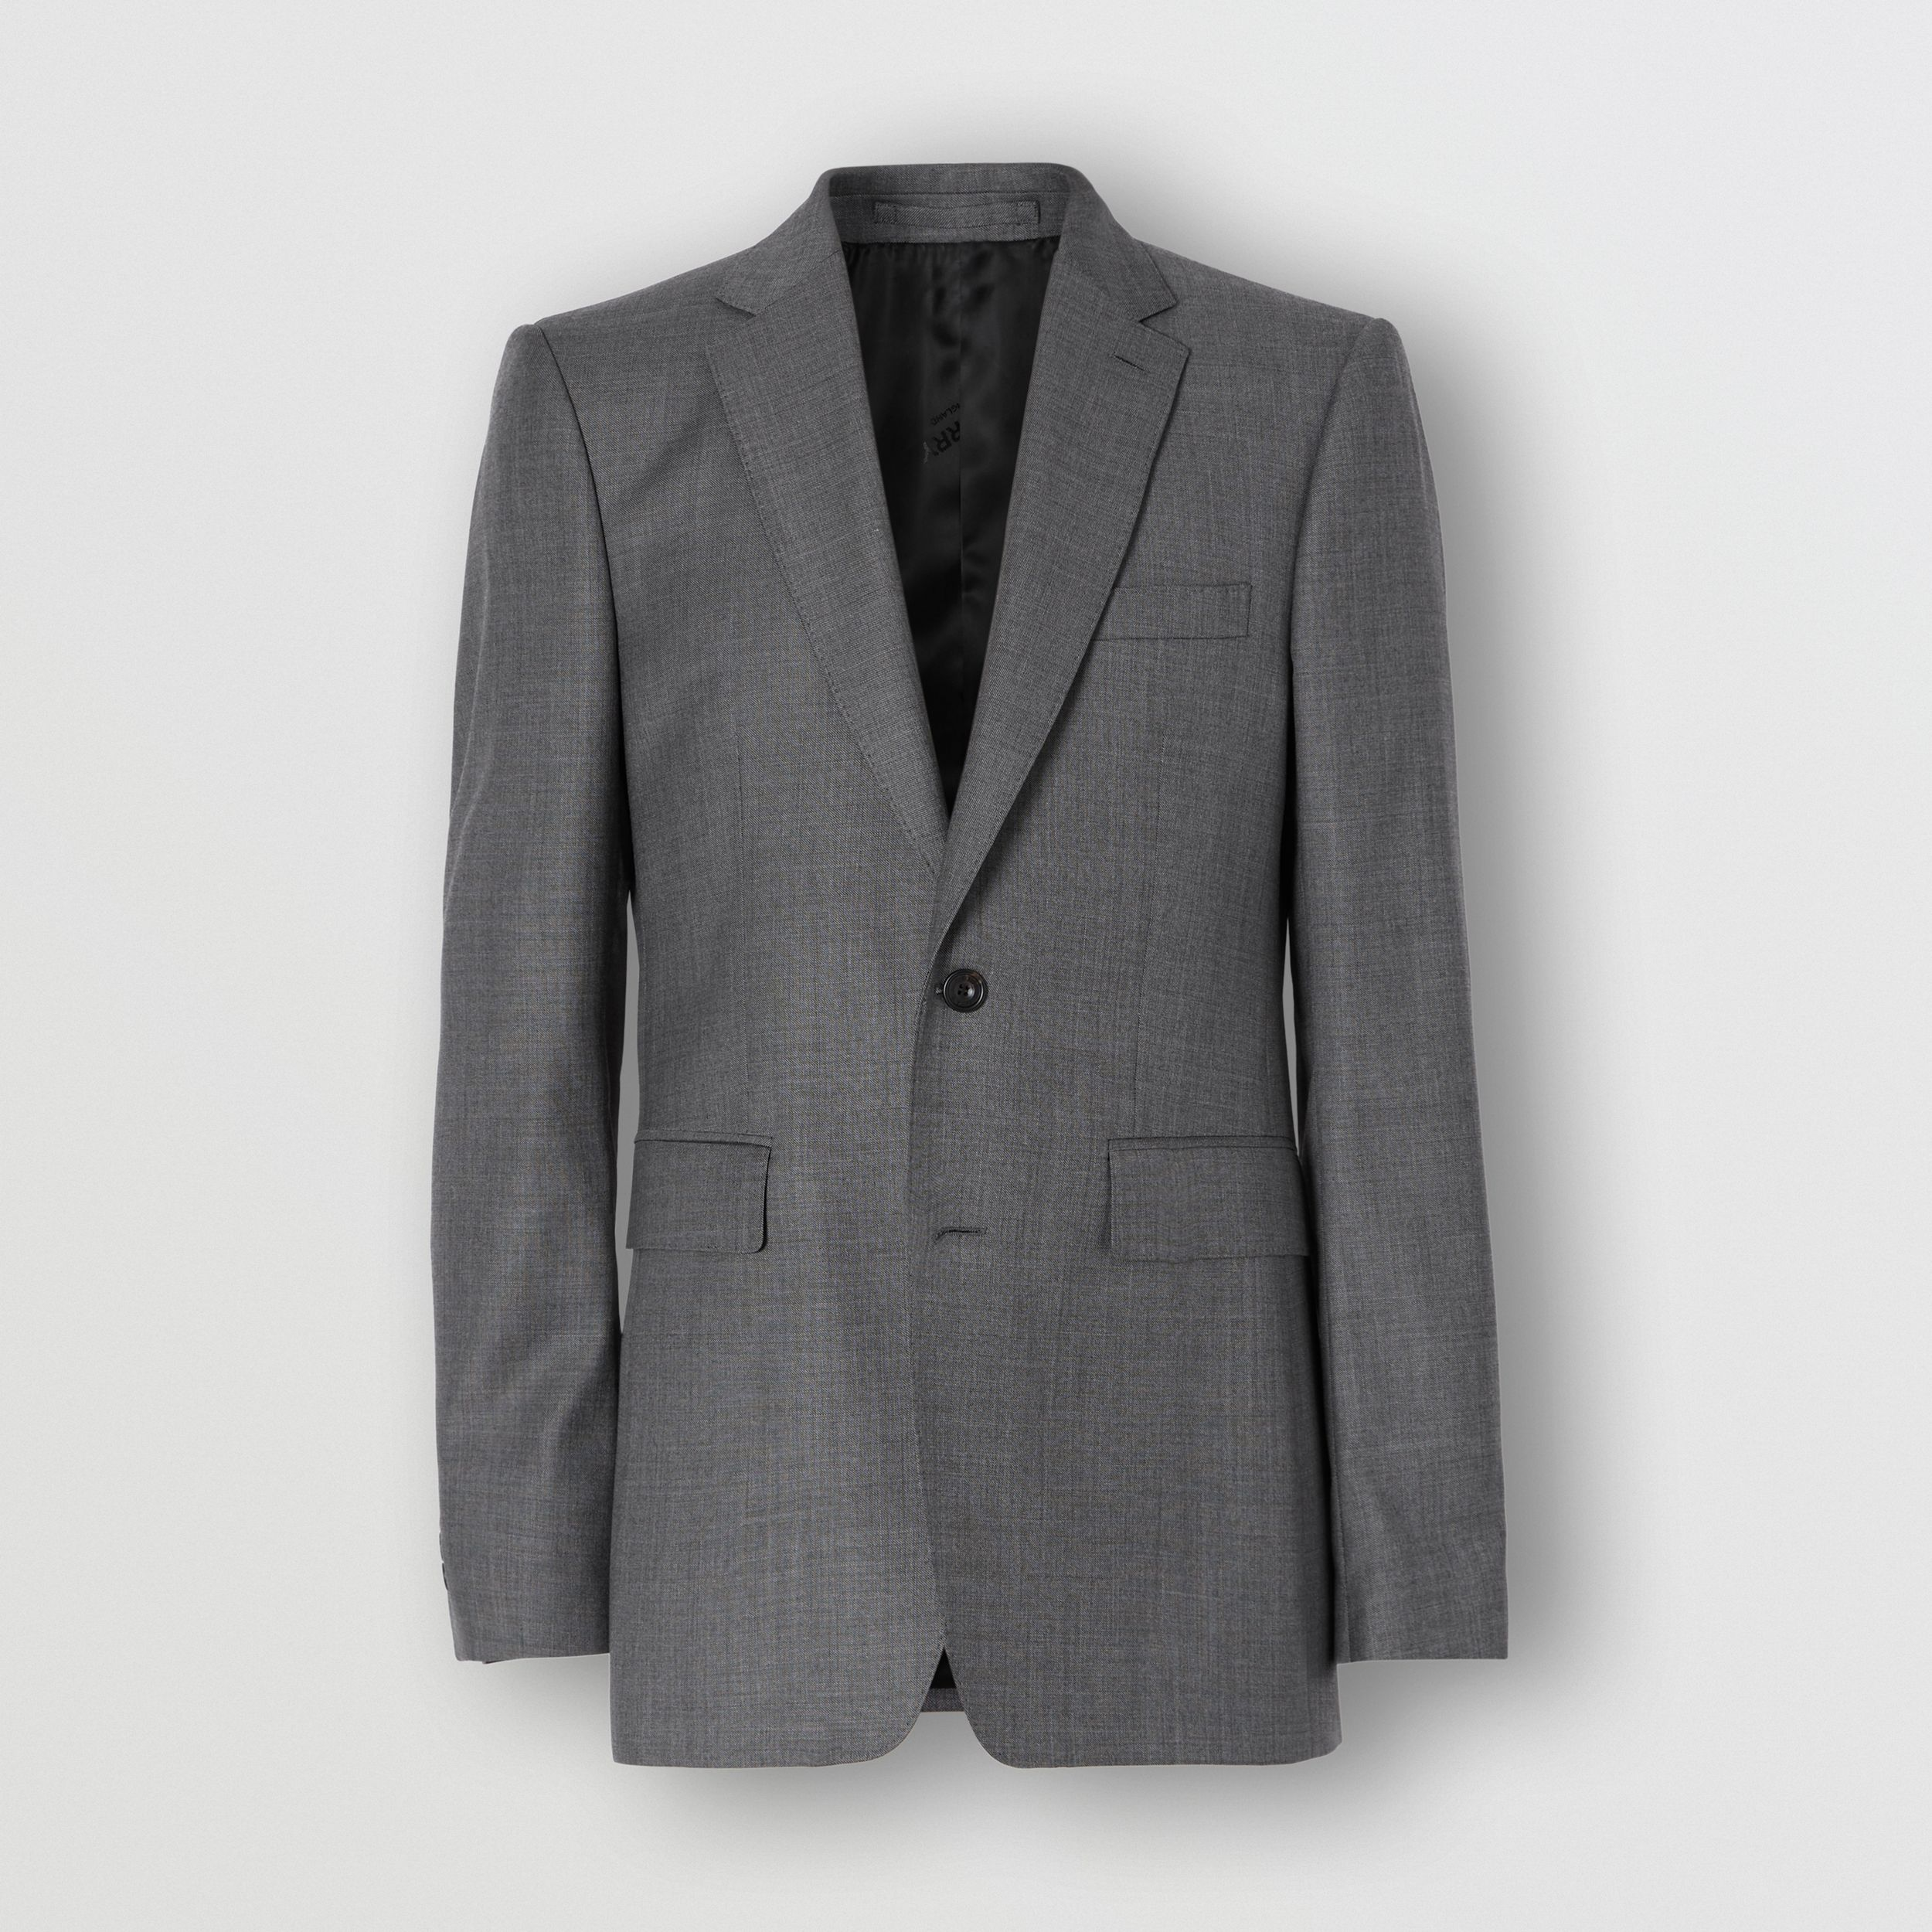 Classic Fit Sharkskin Wool Suit in Mid Grey Melange - Men | Burberry - 4